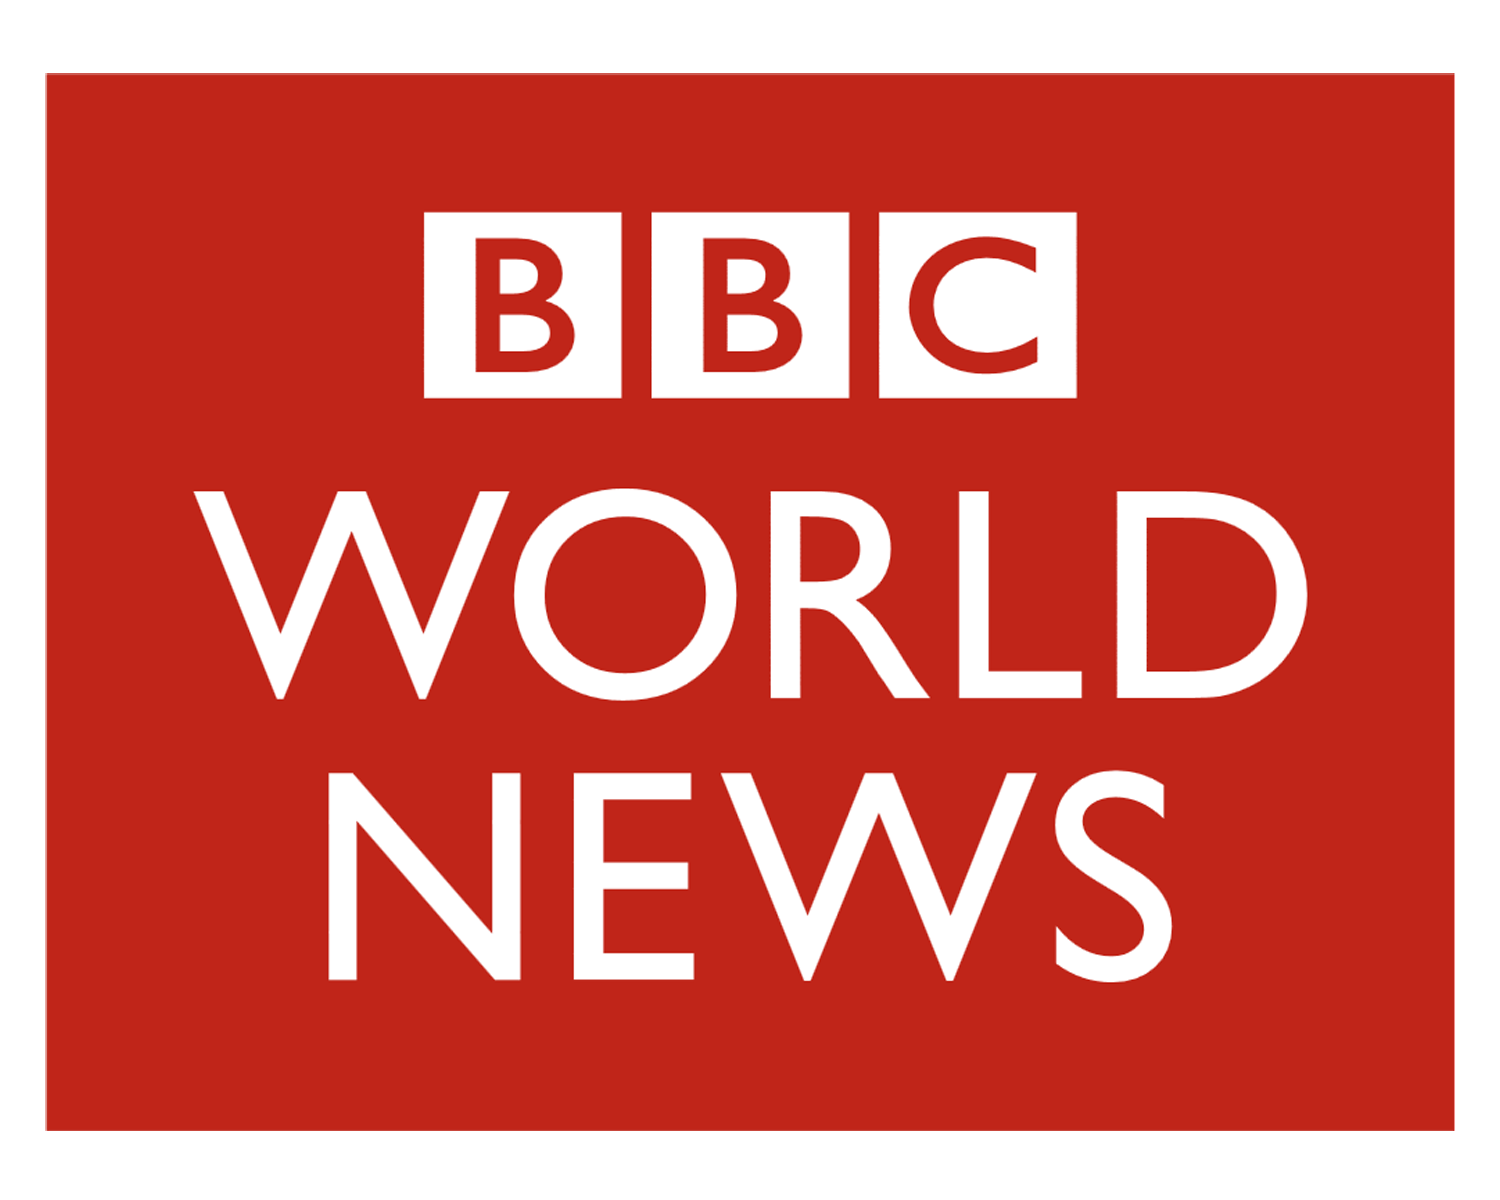 bbc world news,drpierresblog, dr Berry pierre, youtube